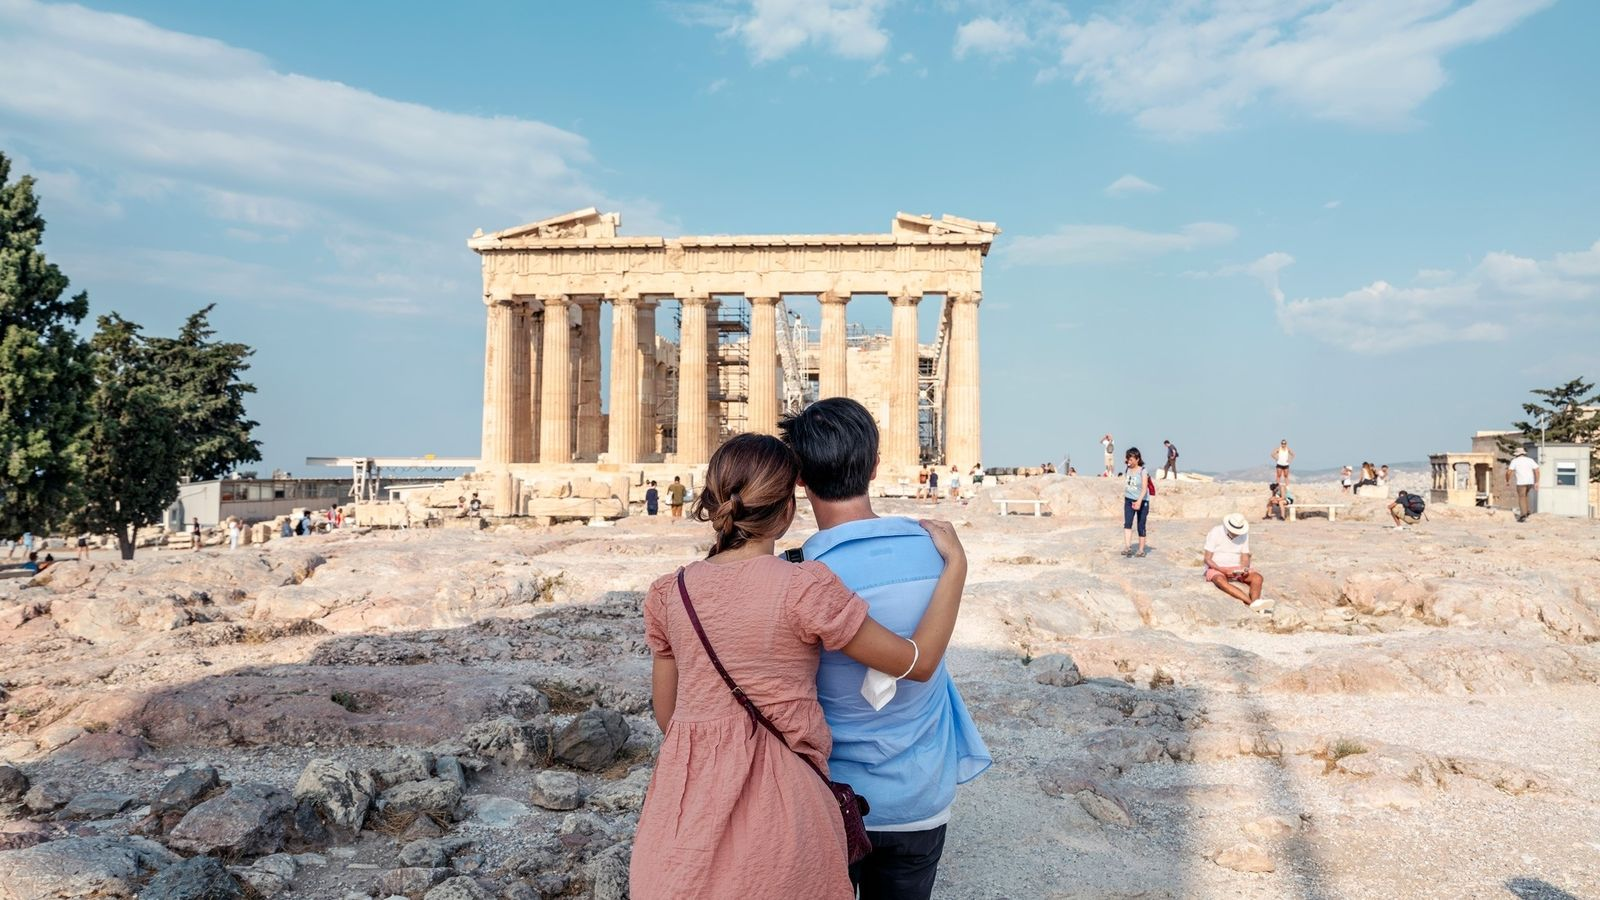 A couple visits the Acropolis in Athens, Greece. The columned Parthenon is usually surrounded by tourist ...